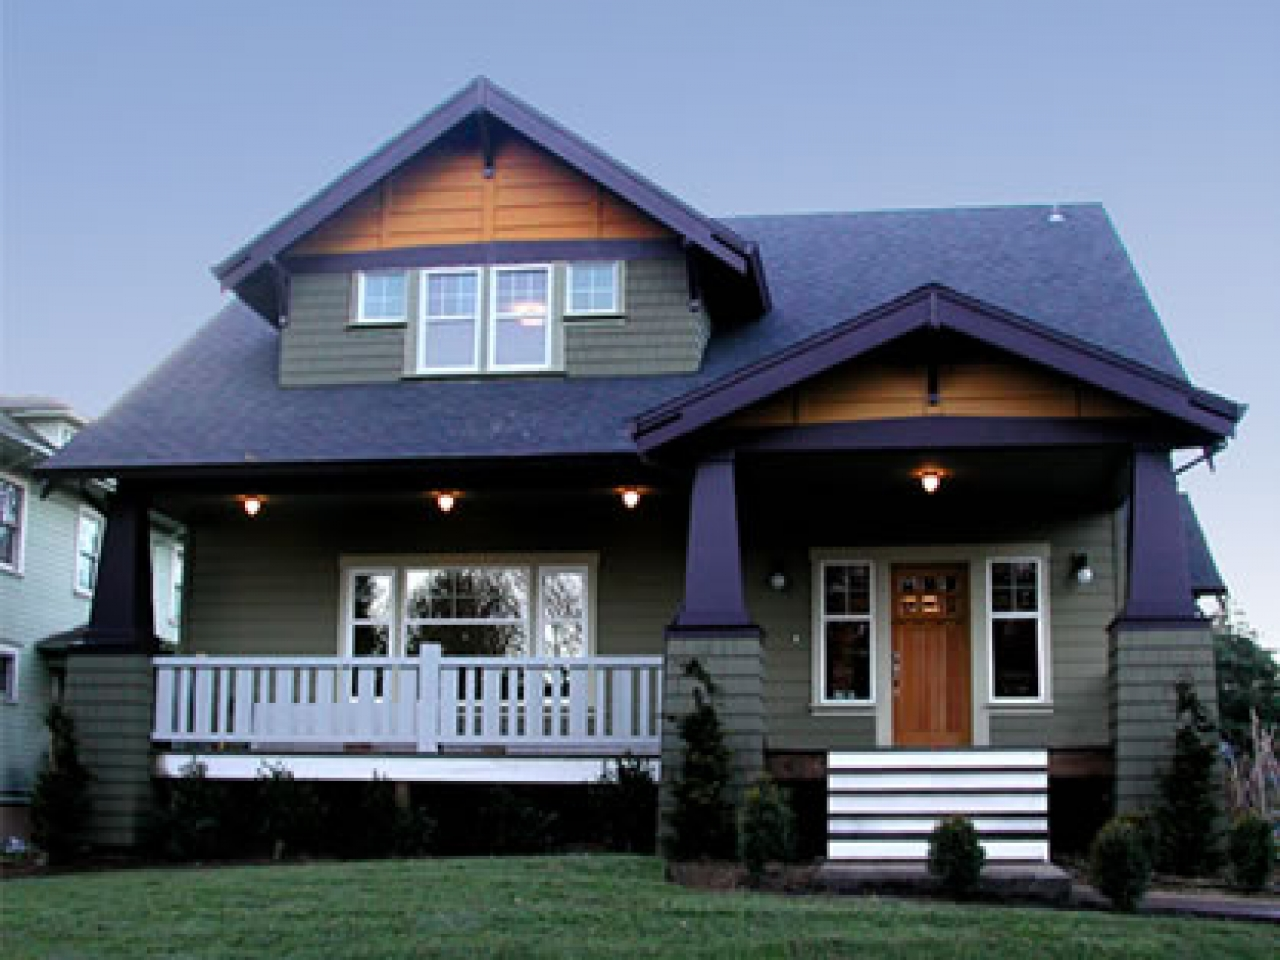 Arts and crafts bungalow styles craftsman bungalow style for Craftsman style bungalow home plans